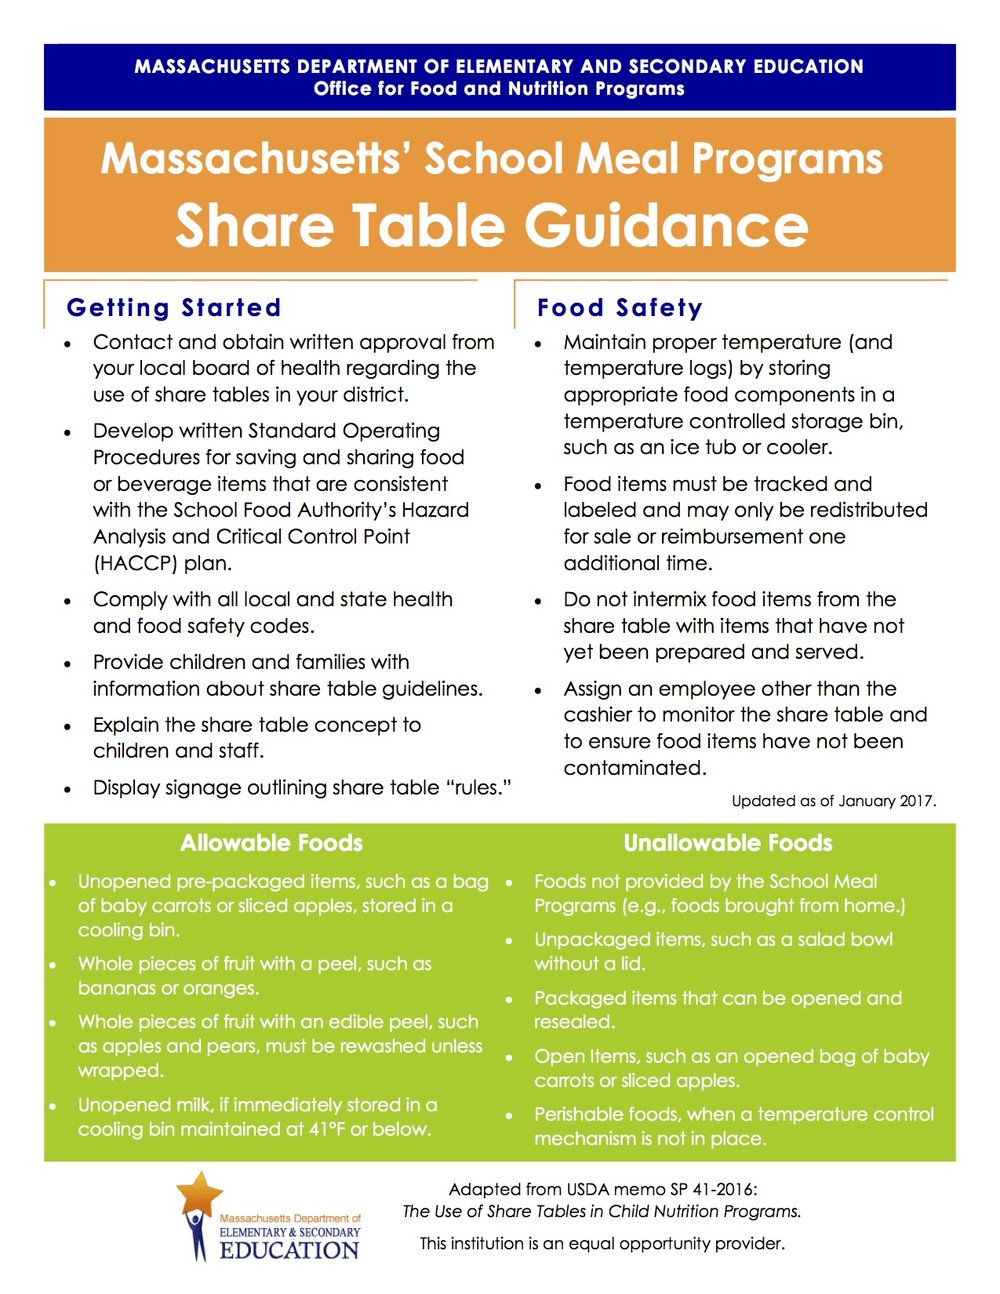 Massachusetts Department of Elementary and Secondary Education Guide to Share Tables  https://thegreenteam.org/wp-content/uploads/2014/04/Share-Table-Guidance.pdf